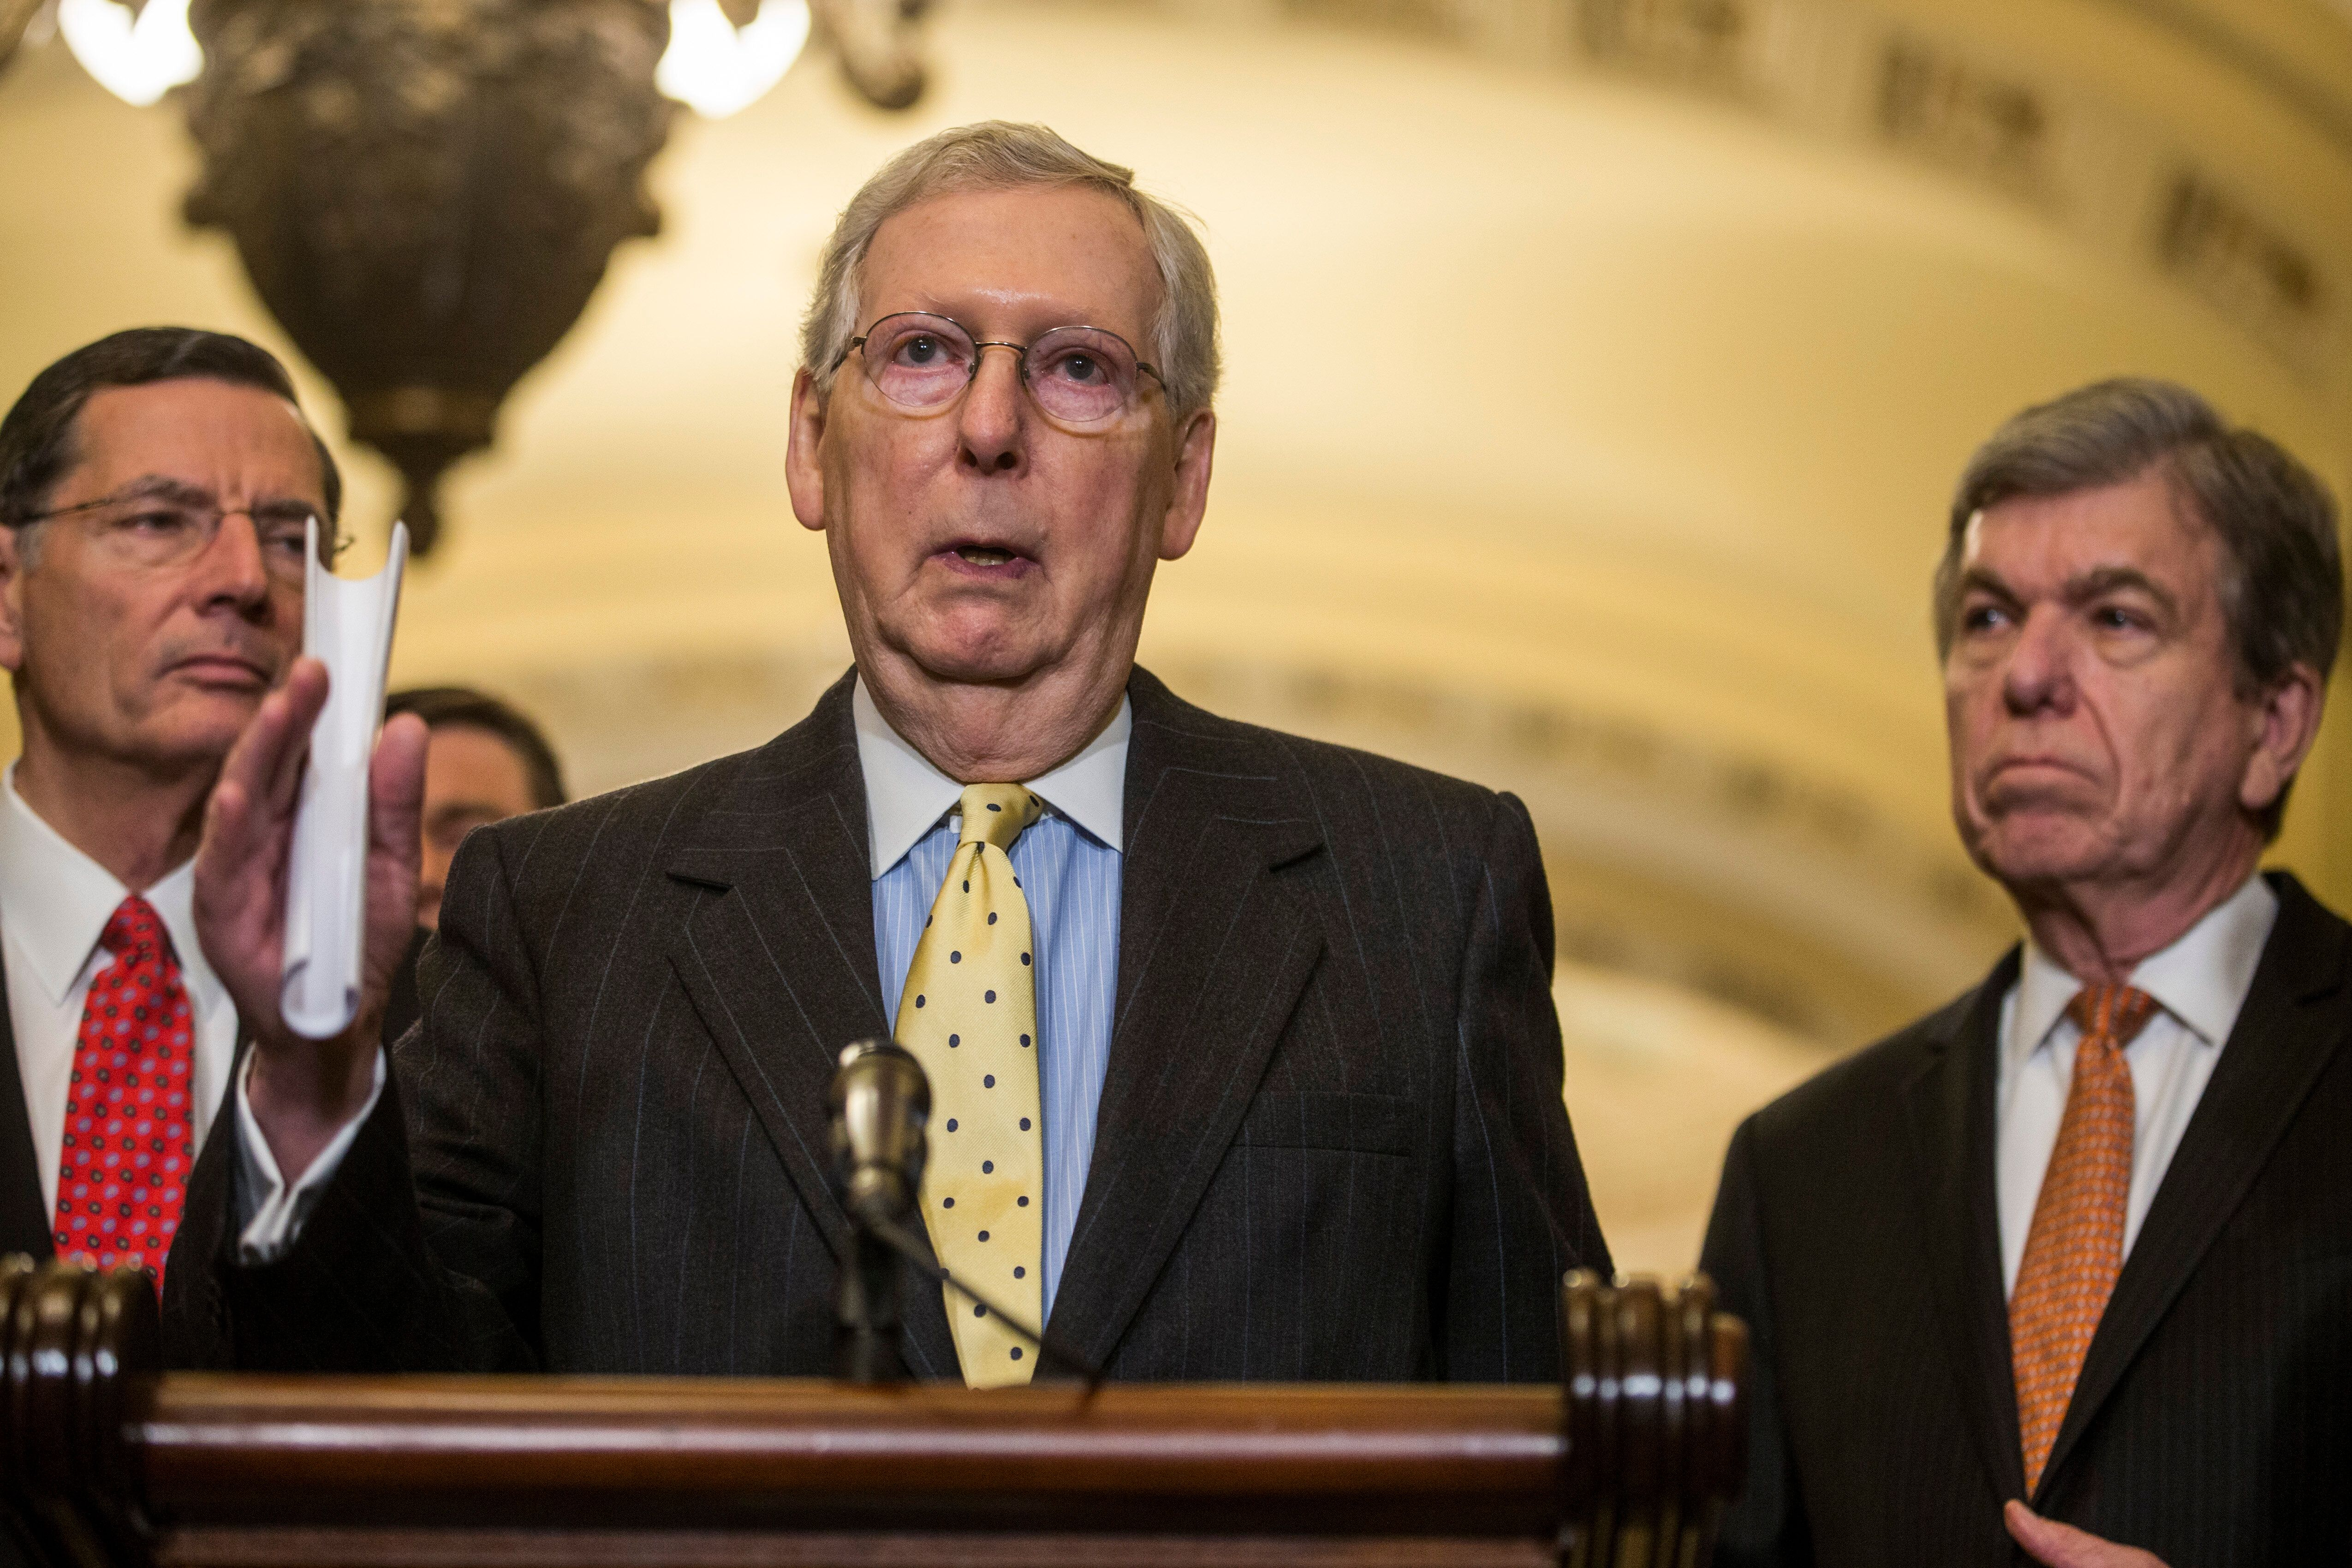 WASHINGTON, DC - APRIL 02:  Senate Majority Leader Mitch McConnell (R-KY) speaks during a news conference following a weekly policy luncheon on April 2, 2019 in Washington, DC.  Also pictured are Sen. John Barasso (R-WY), and Sen. Roy Blunt (R-MO).  (Photo by Zach Gibson/Getty Images)